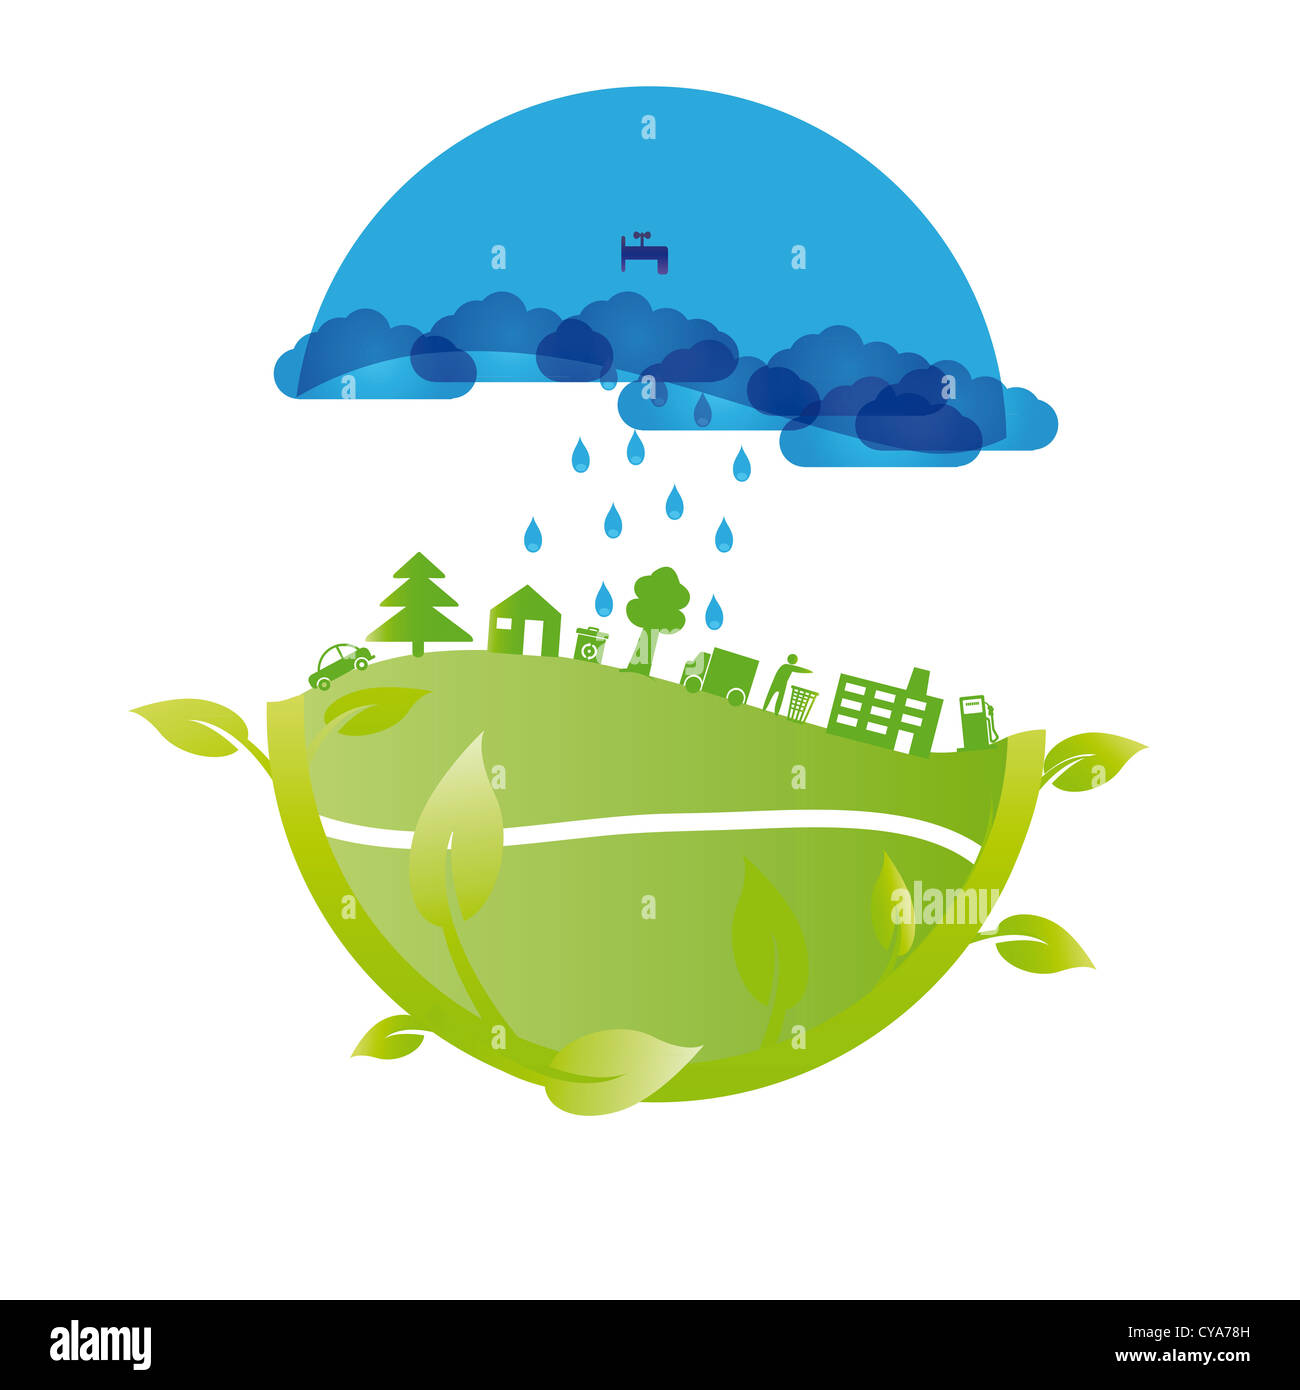 Ecology concept you can use on Earth Day - Stock Image